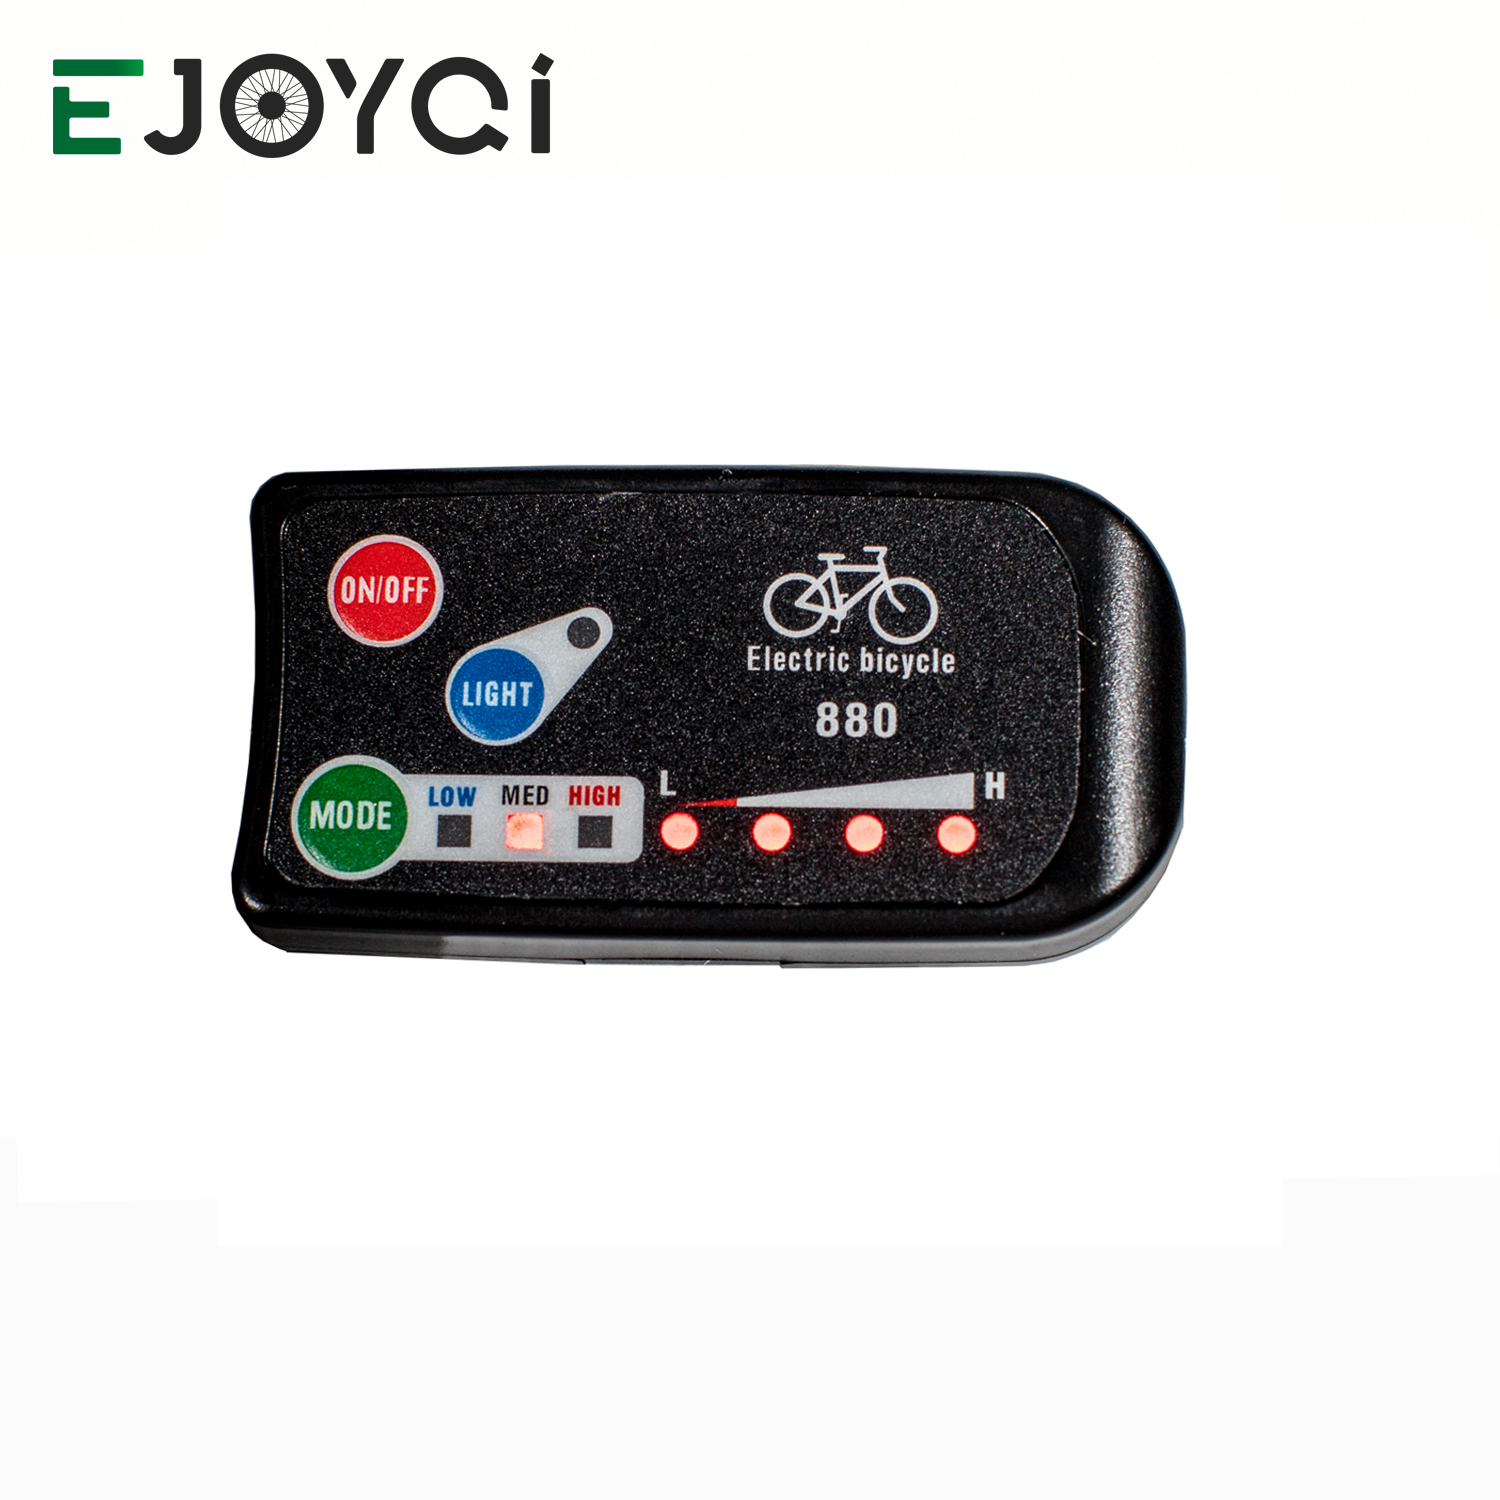 EJOYQI KT LED880 Ebike Display 36V48V Electric Bike Intelligent Control Panel Display Electric Bicycle Accessories Free Shipping